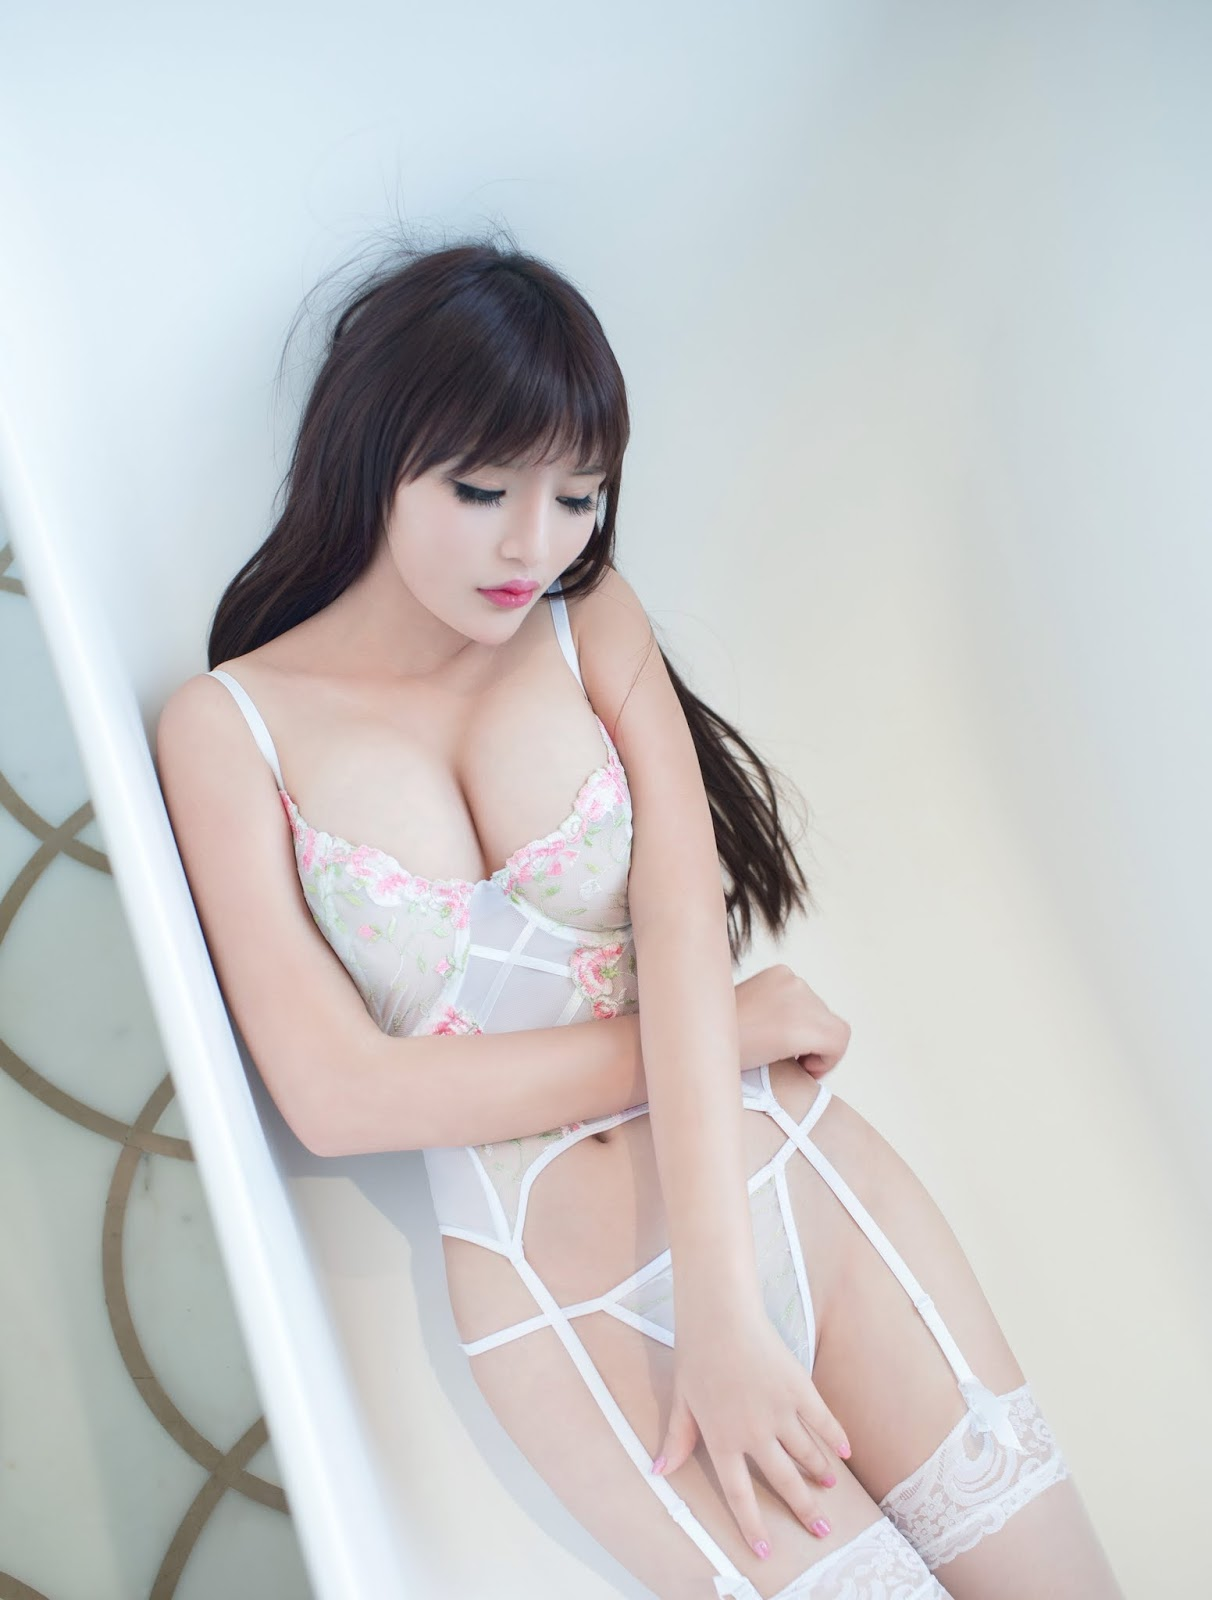 21 - Hot Girl Big TIts TUIGIRL NO.38 Asian Naked